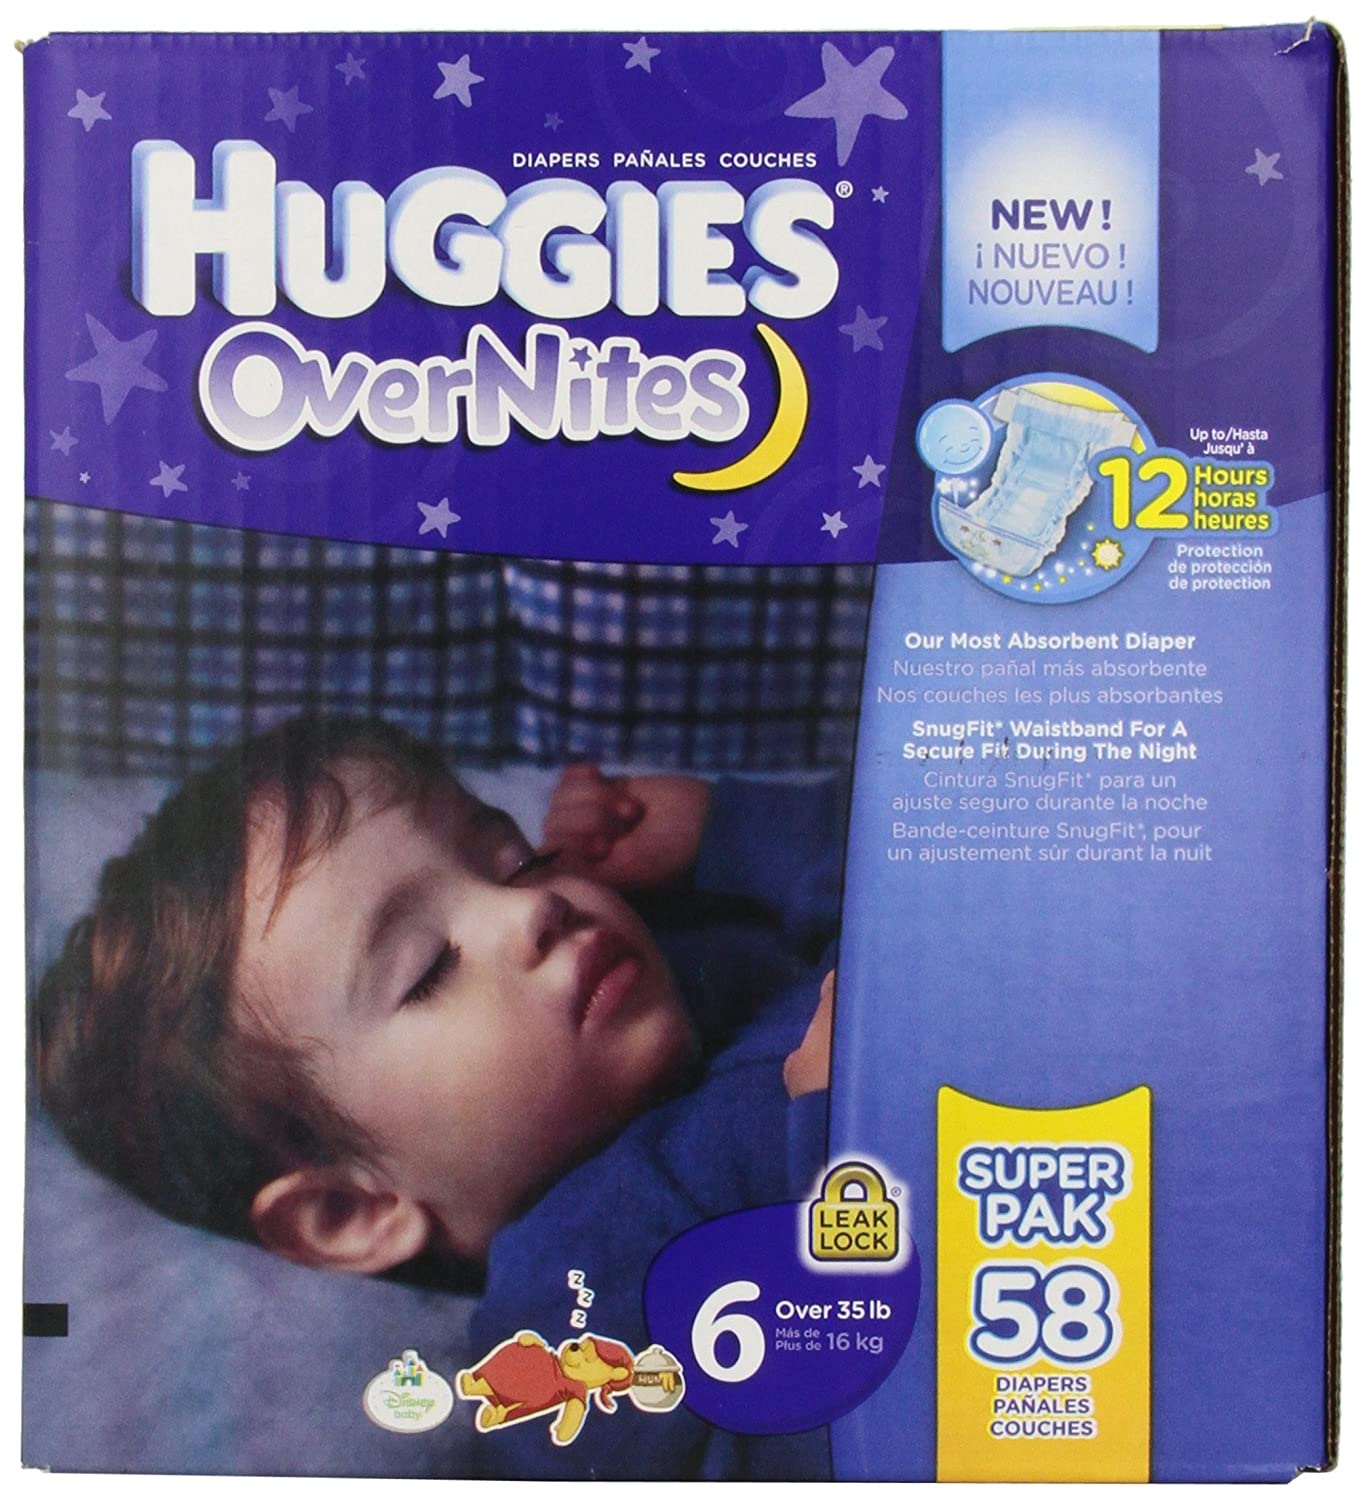 Amazon.com: Huggies Overnites Diapers, Size 6, Big Pack, 58 Count: Health & Personal Care